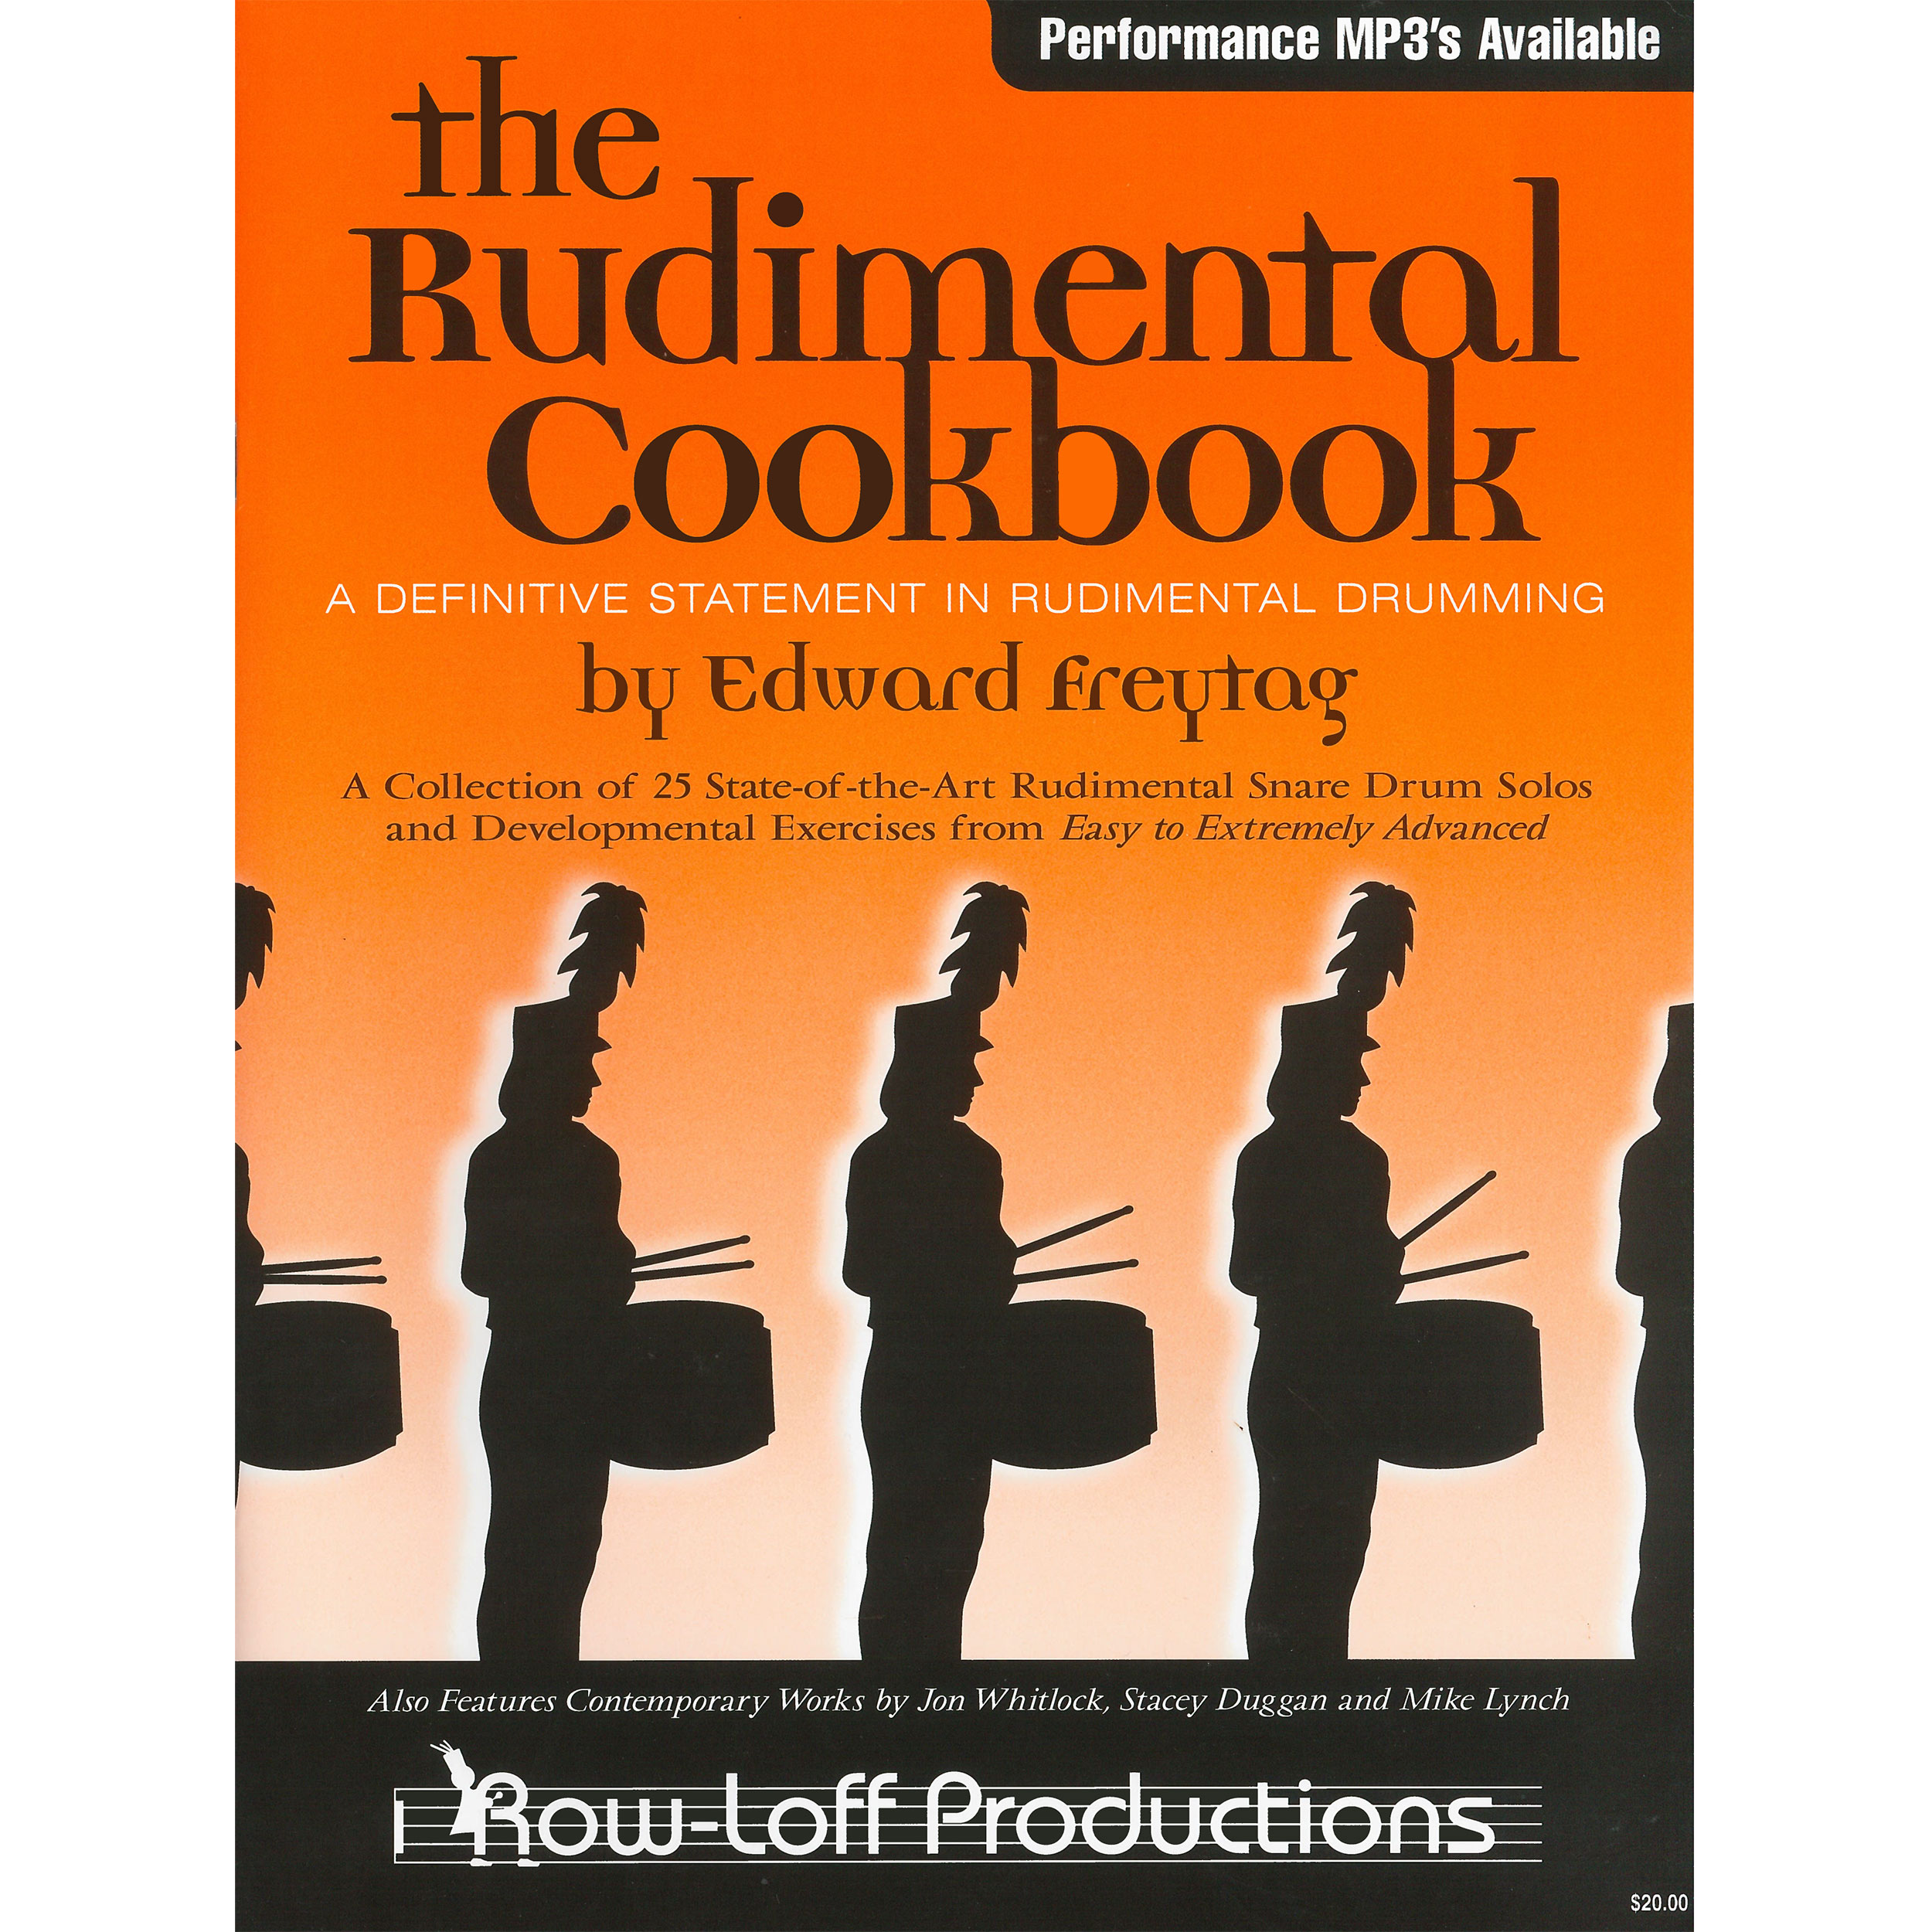 The Rudimental Cookbook by Edward Freytag